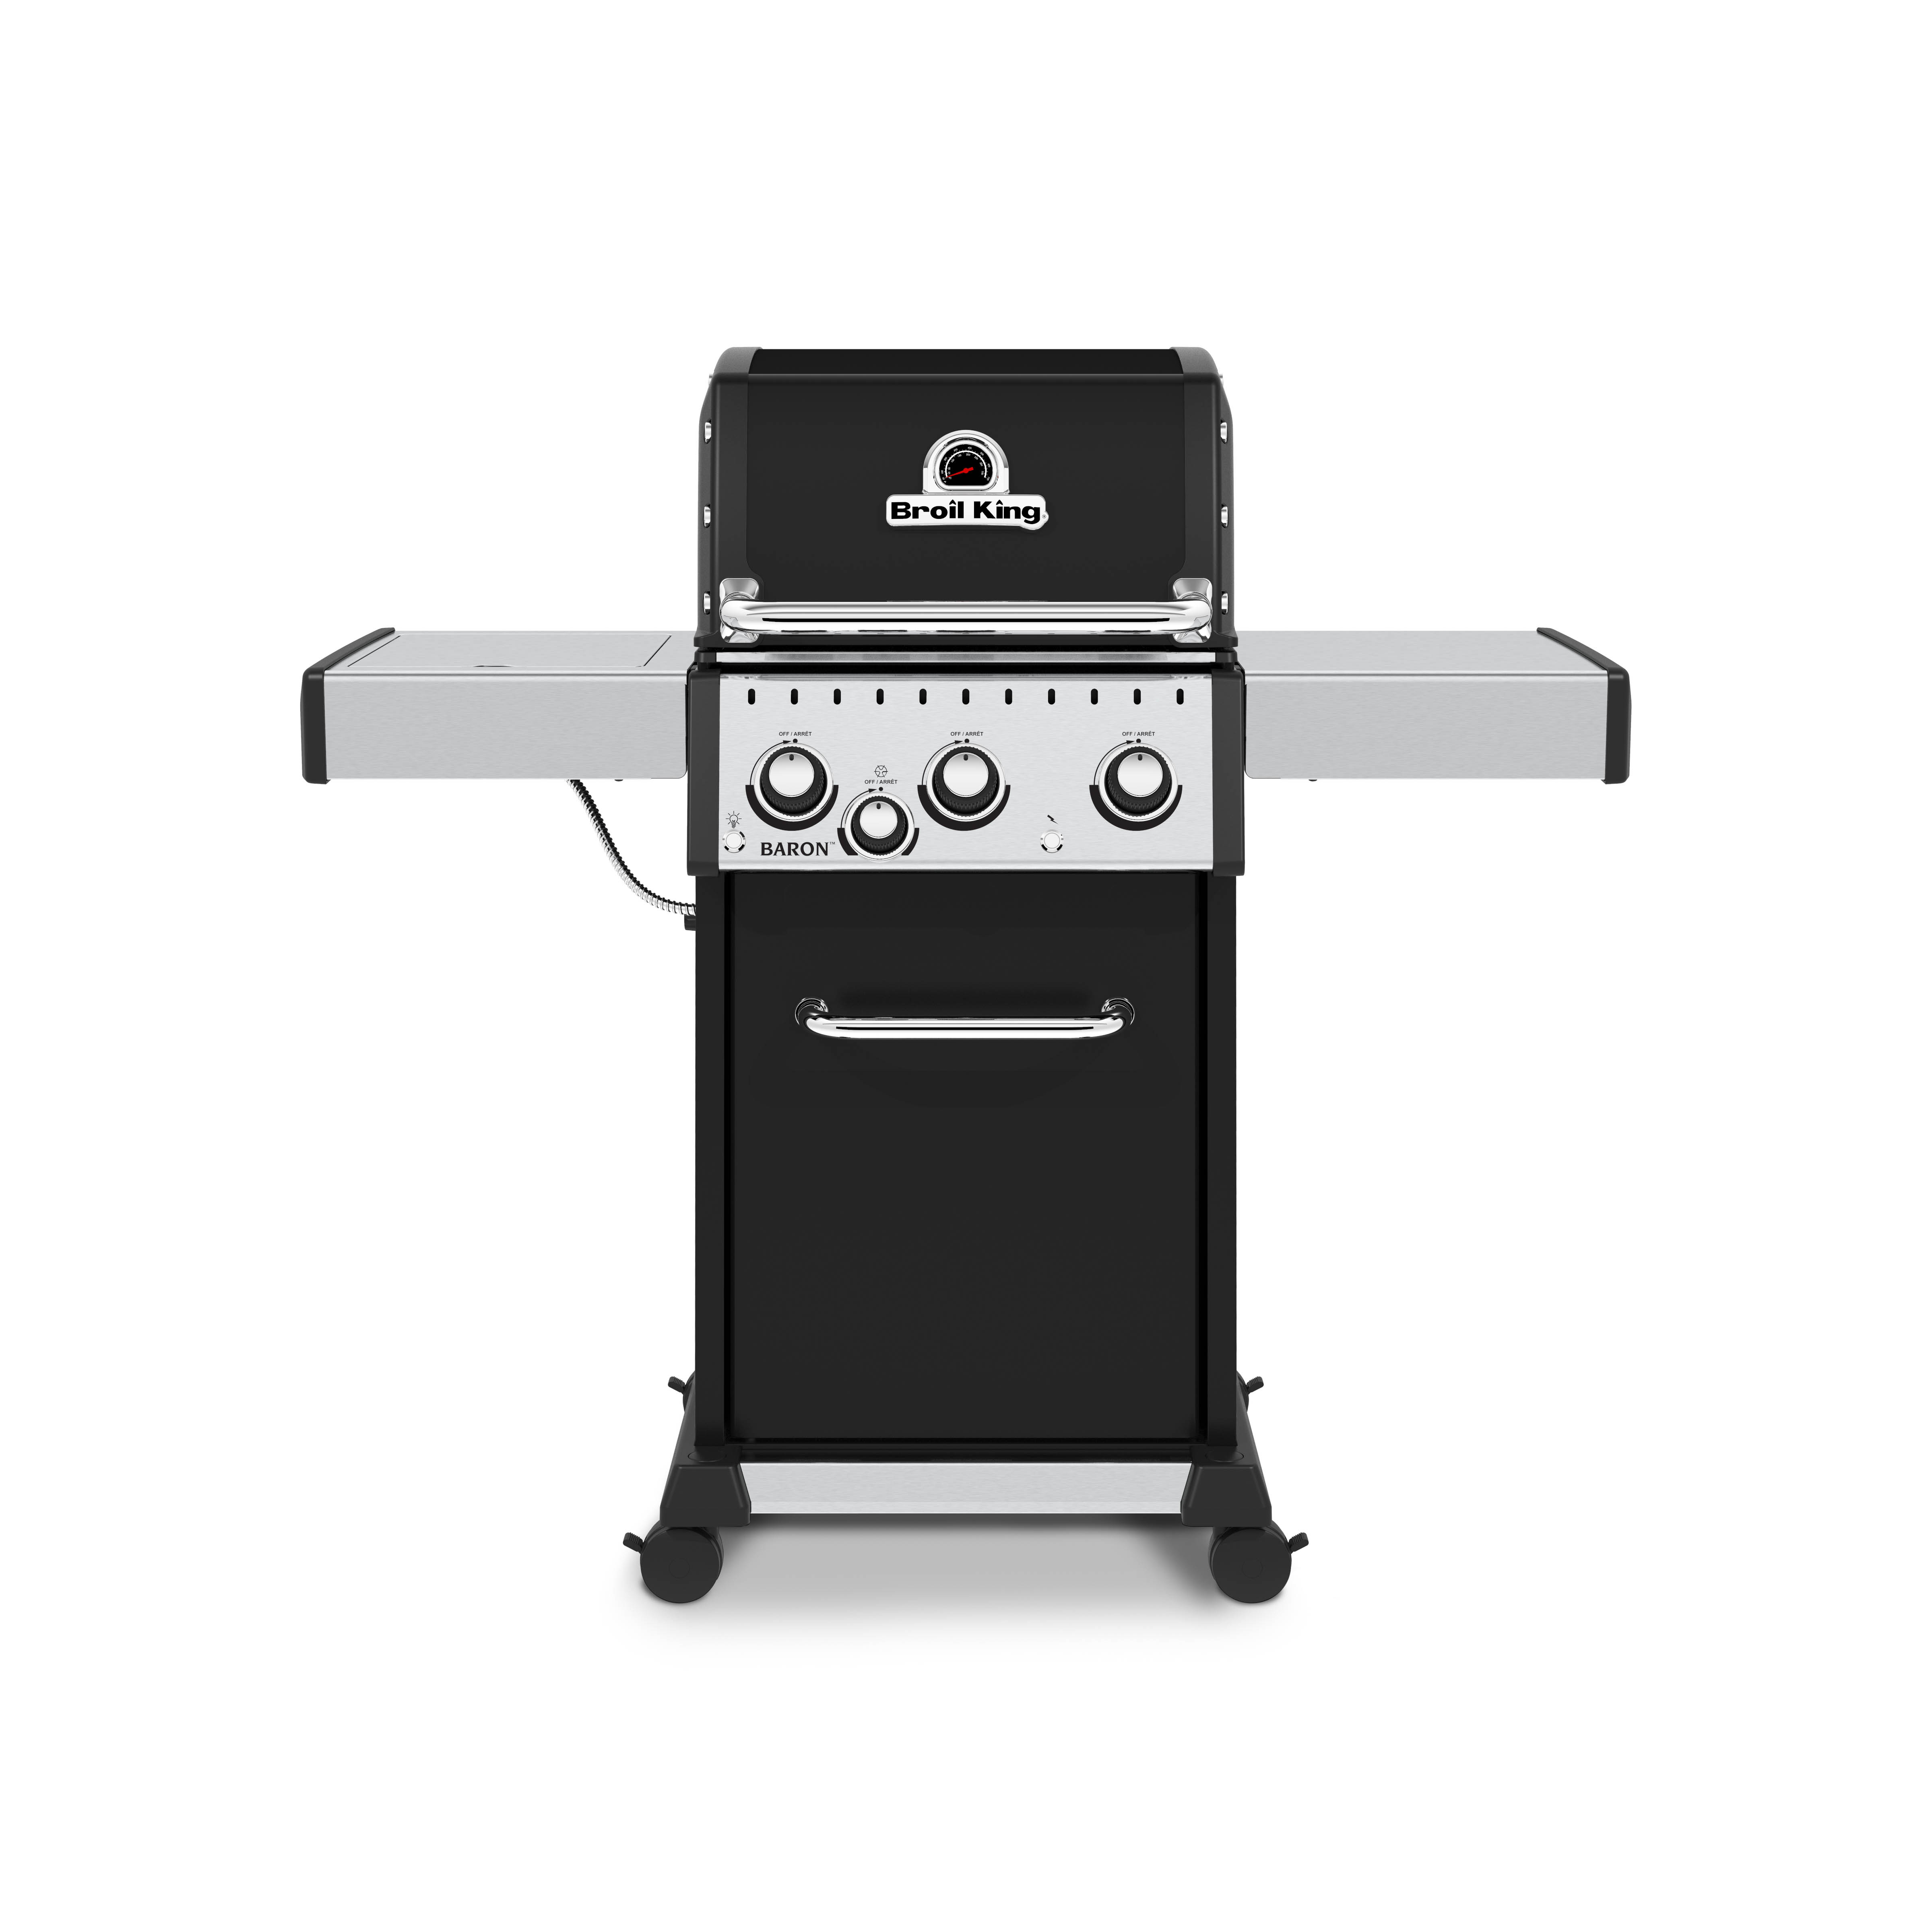 Broil King Baron 340 (Modell 2021)